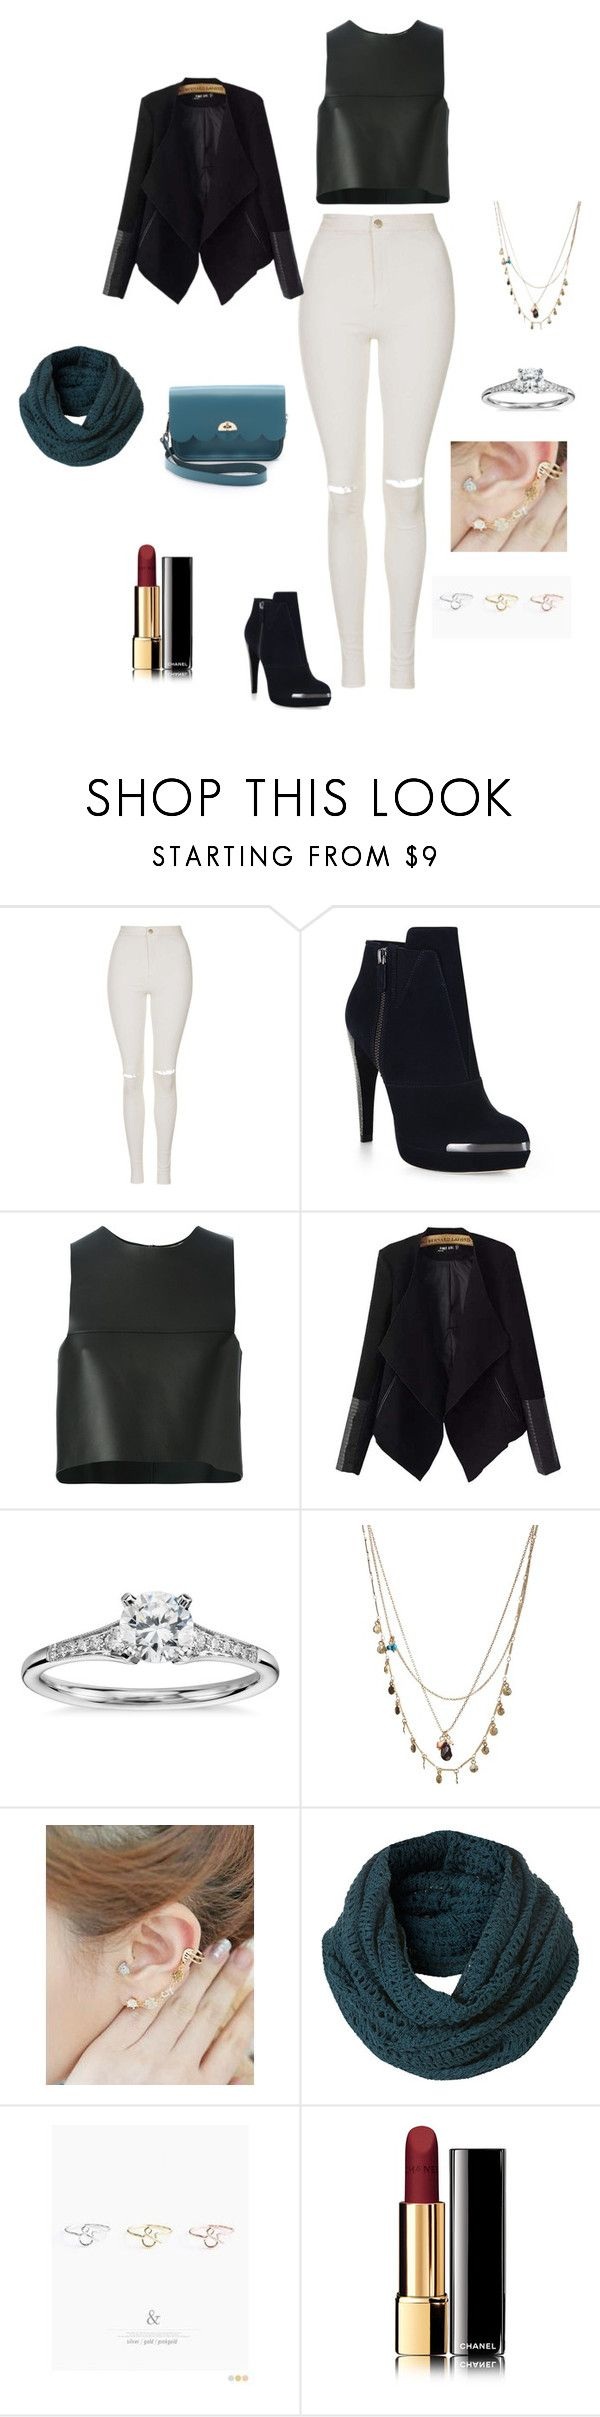 """Başlıksız #2477"" by tubaserdem ❤ liked on Polyvore featuring Topshop, Hervé Léger, Fendi, Chicnova Fashion, Blue Nile, Orelia, Miss21 Korea, Topman, Pinkrocket and Chanel"